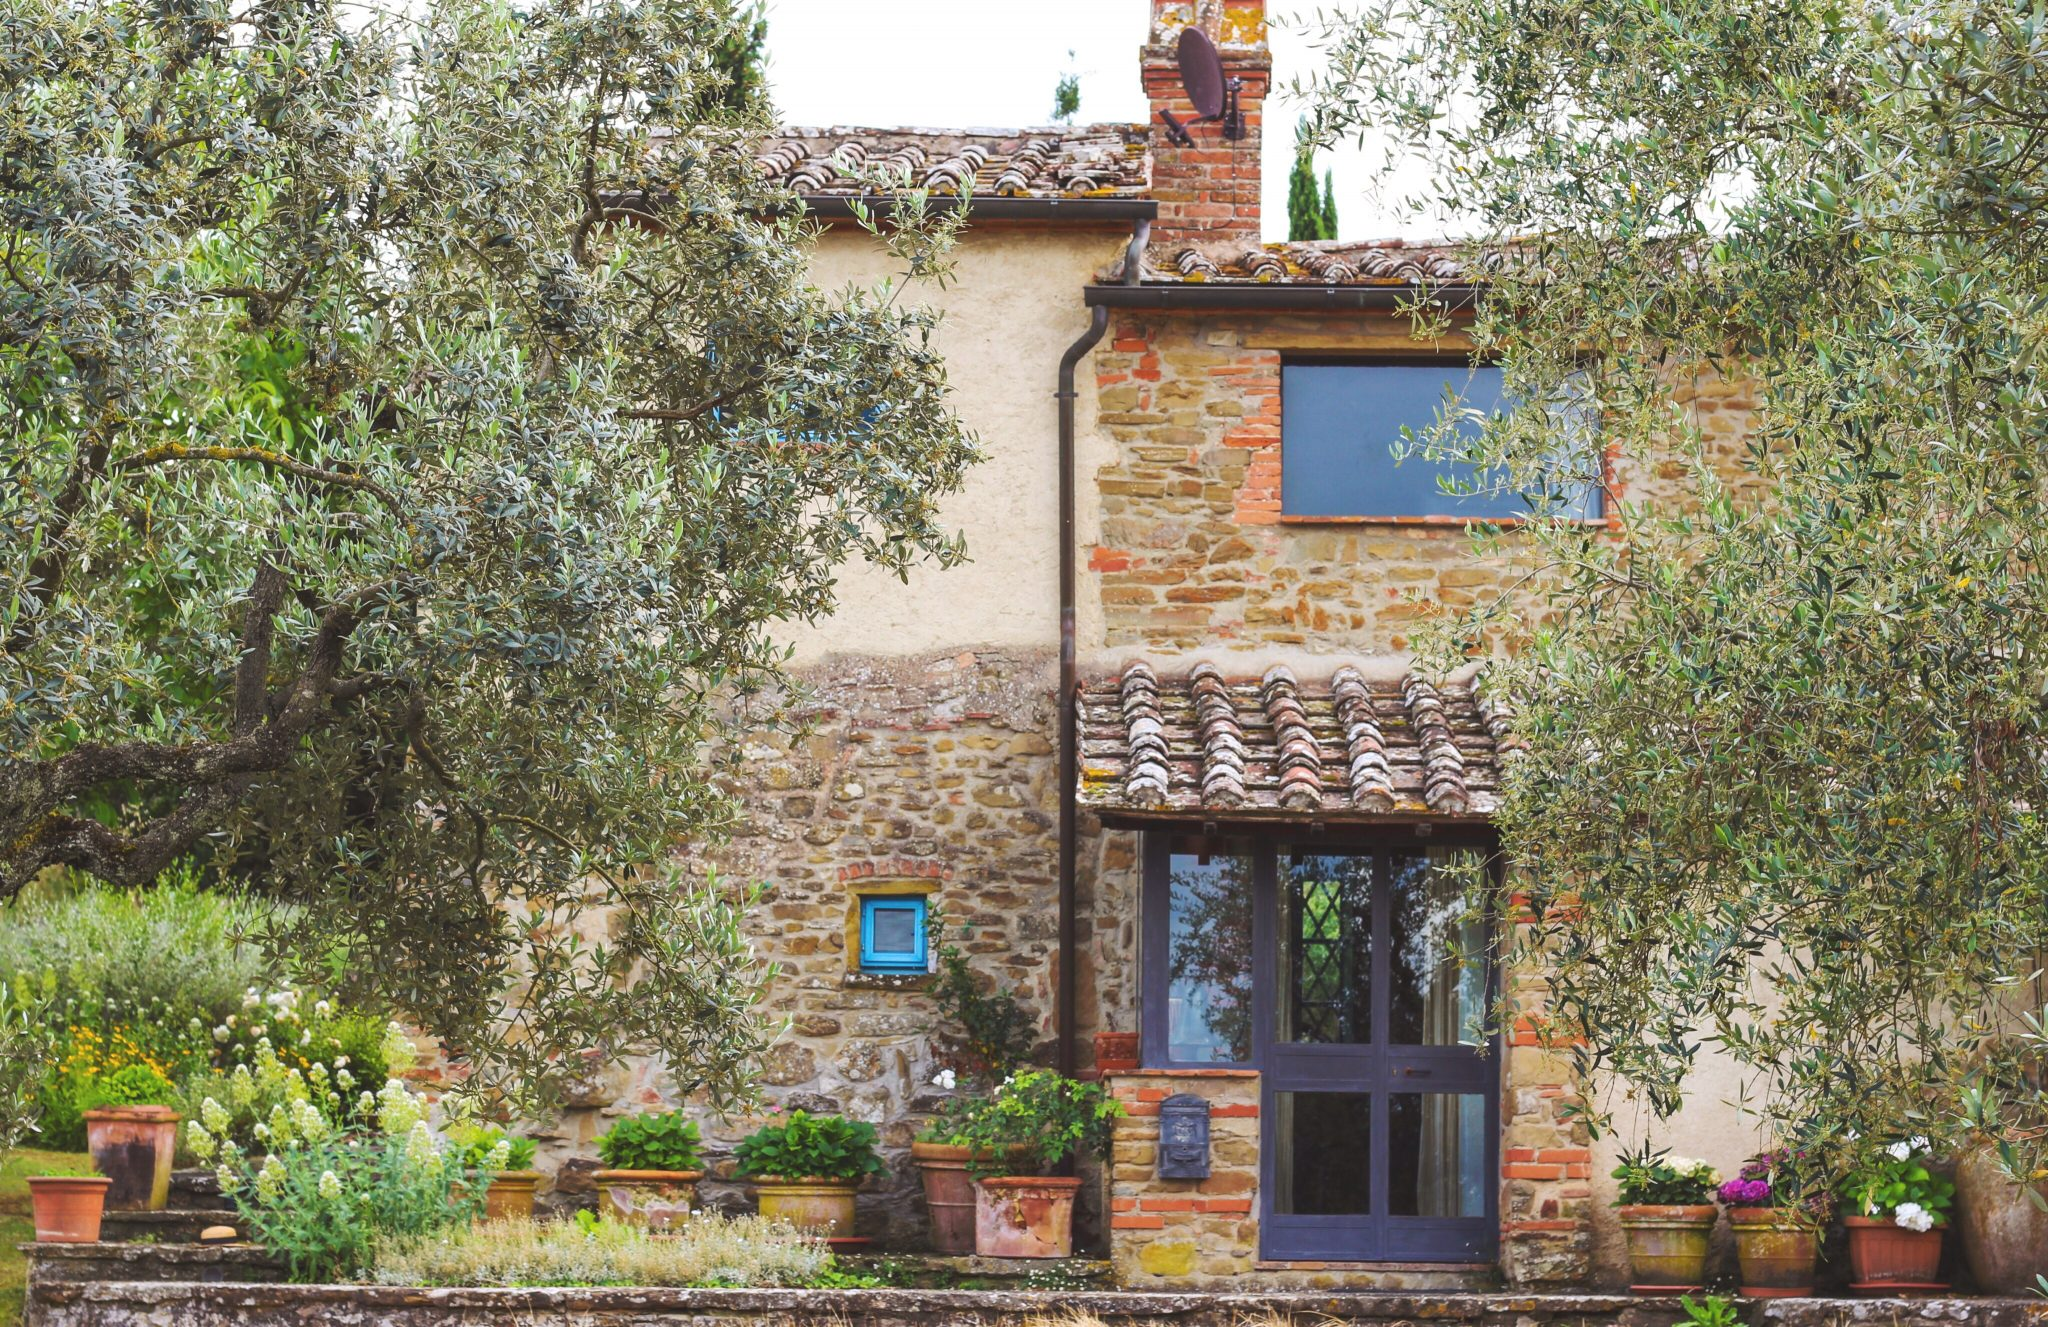 Escape The Digital Grind With A Wellness Retreat In Tuscany